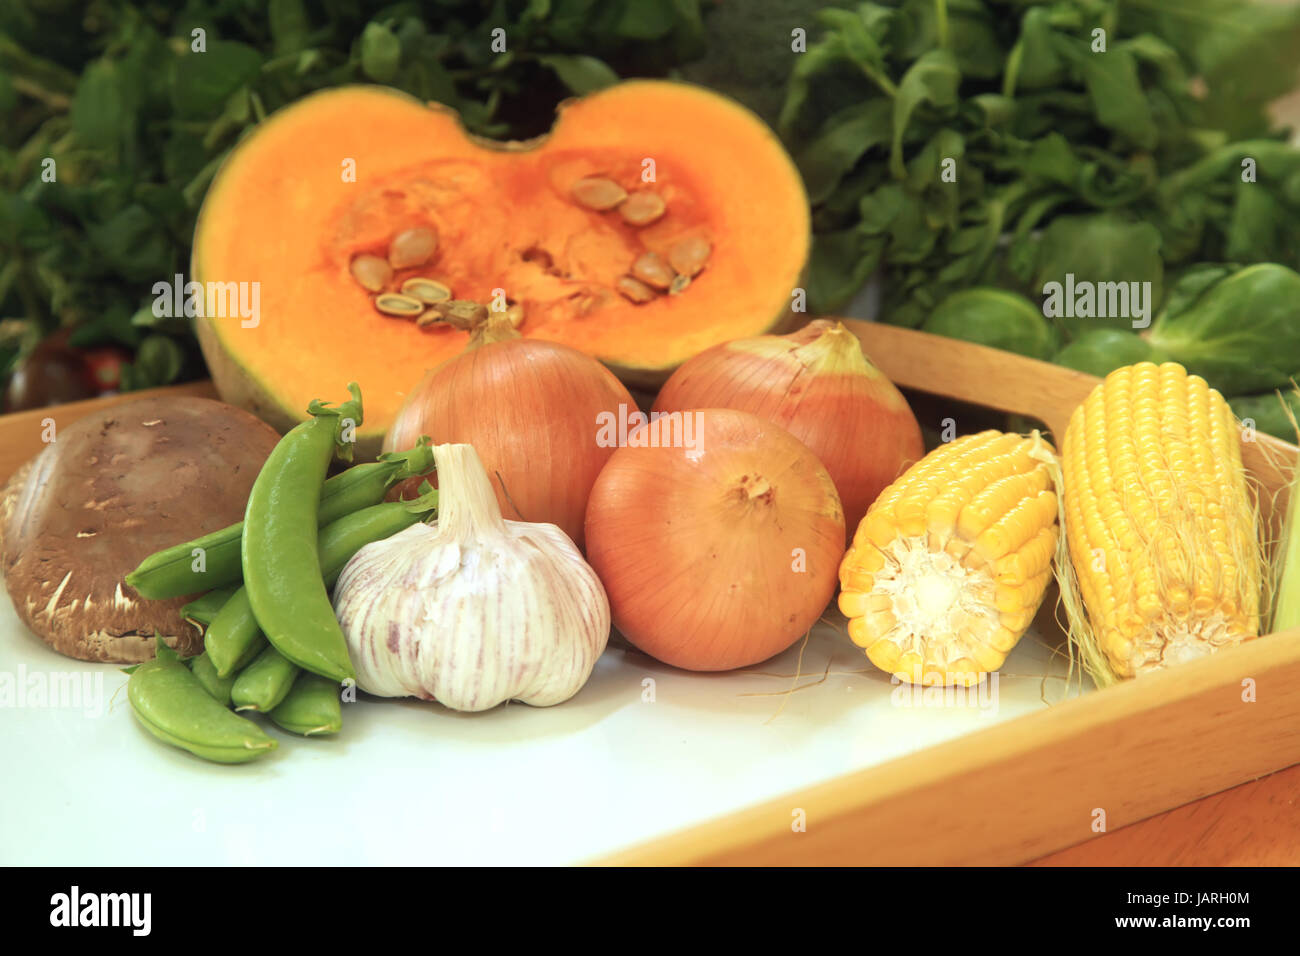 Common Vegetables Frequently Used for Cooking - Stock Photo